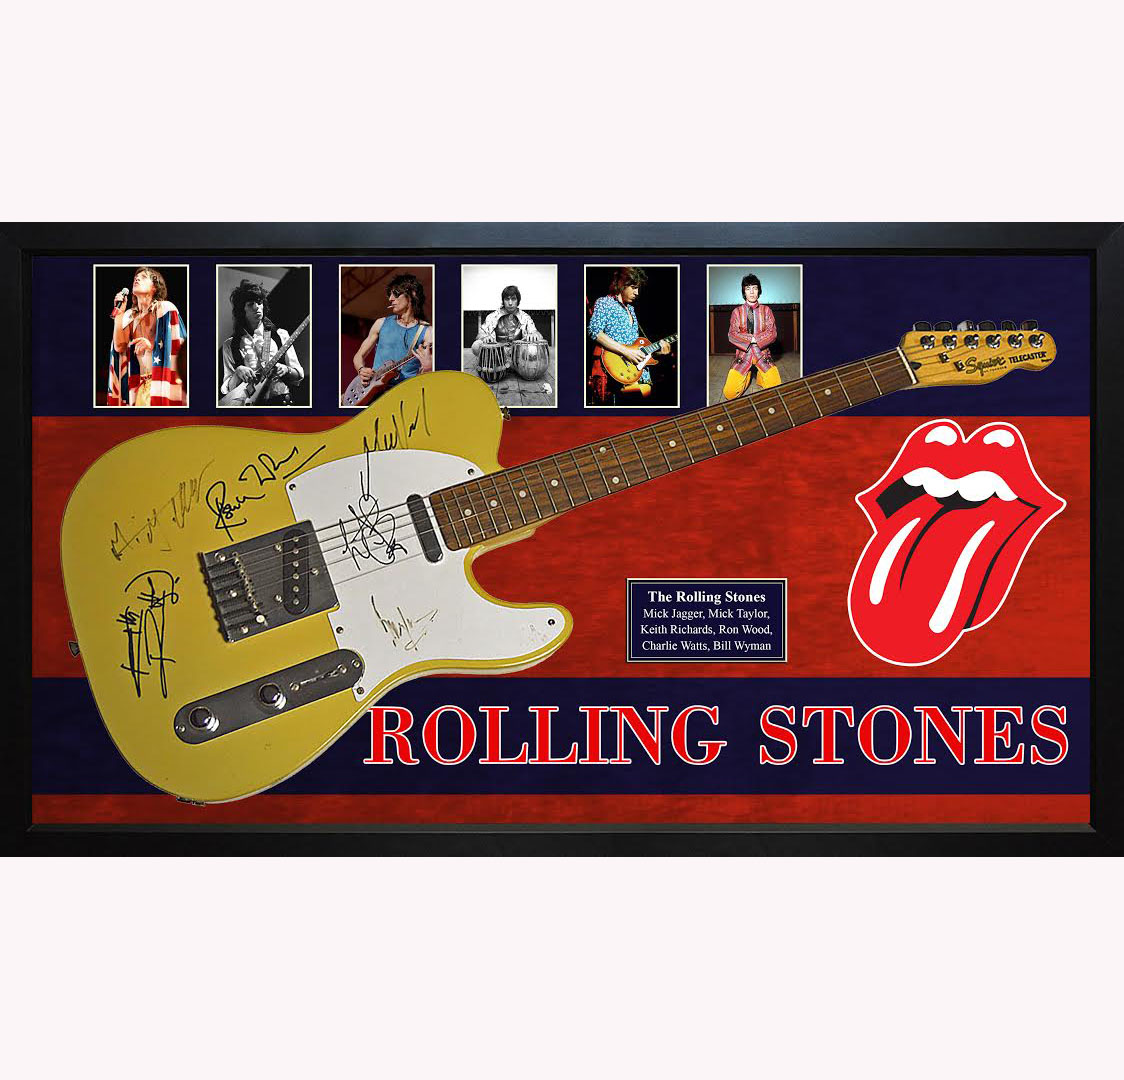 Rolling Stones X6 Autographed Fender Guitar Custom Shadowbox Display Case